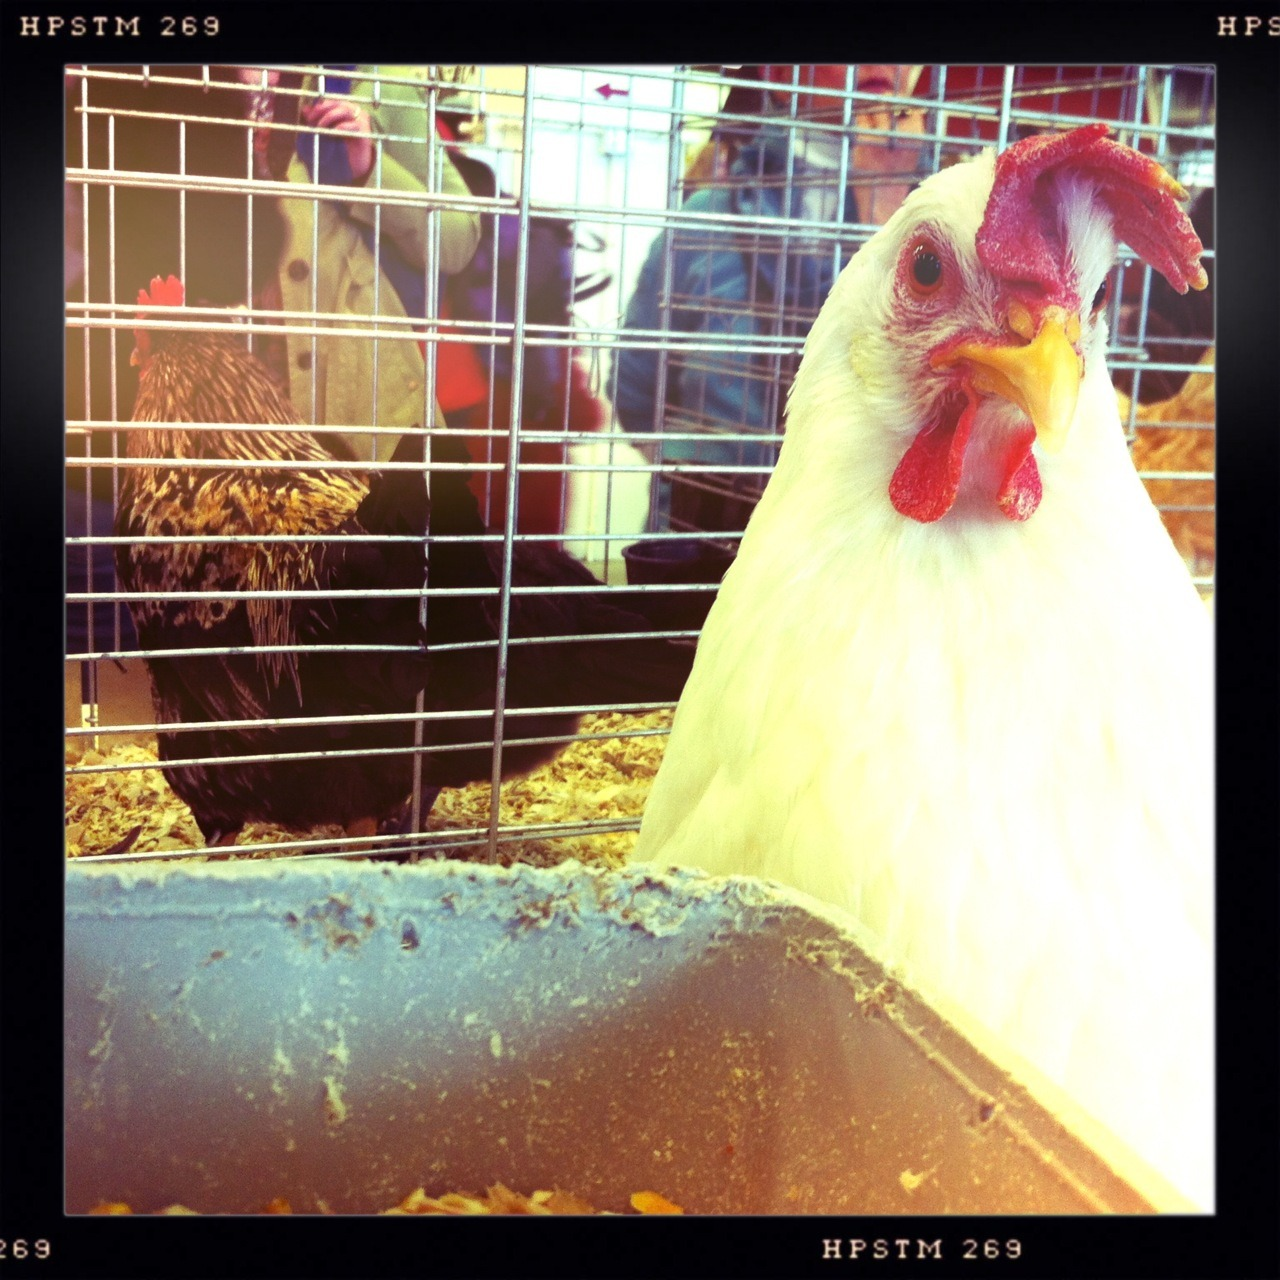 Suspicious Rooster Taken with Hipstamatic, Chunky Lens, Pistil Film, No Flash.